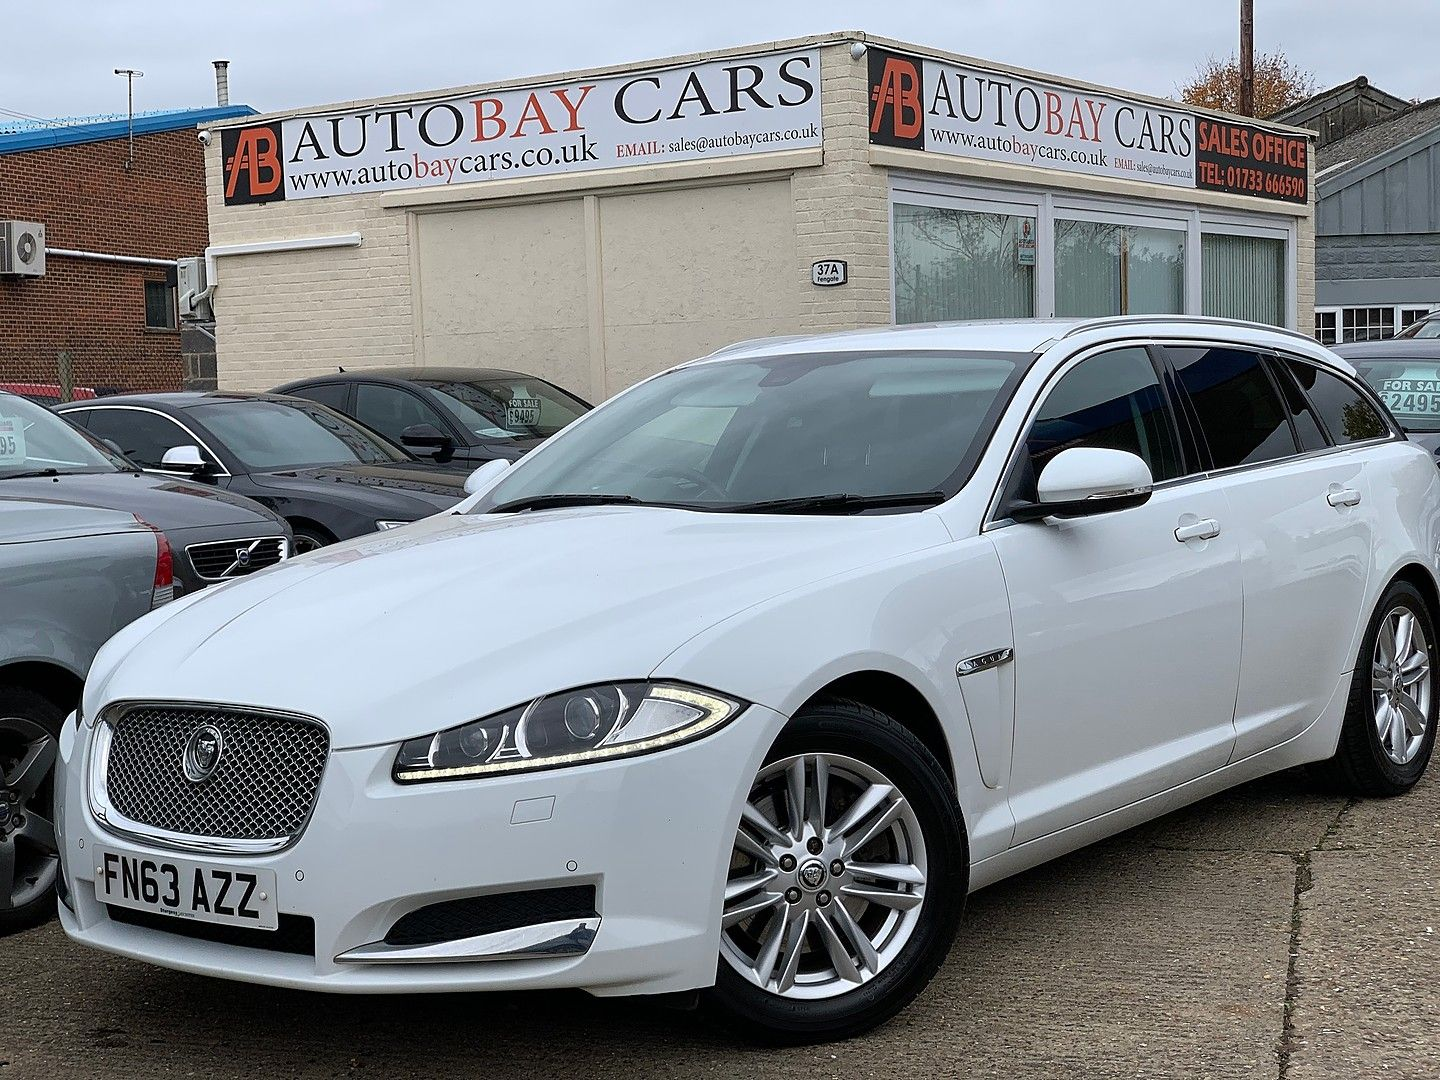 JAGUARXF Sportbrake2.2 Diesel Luxury 163PS for sale